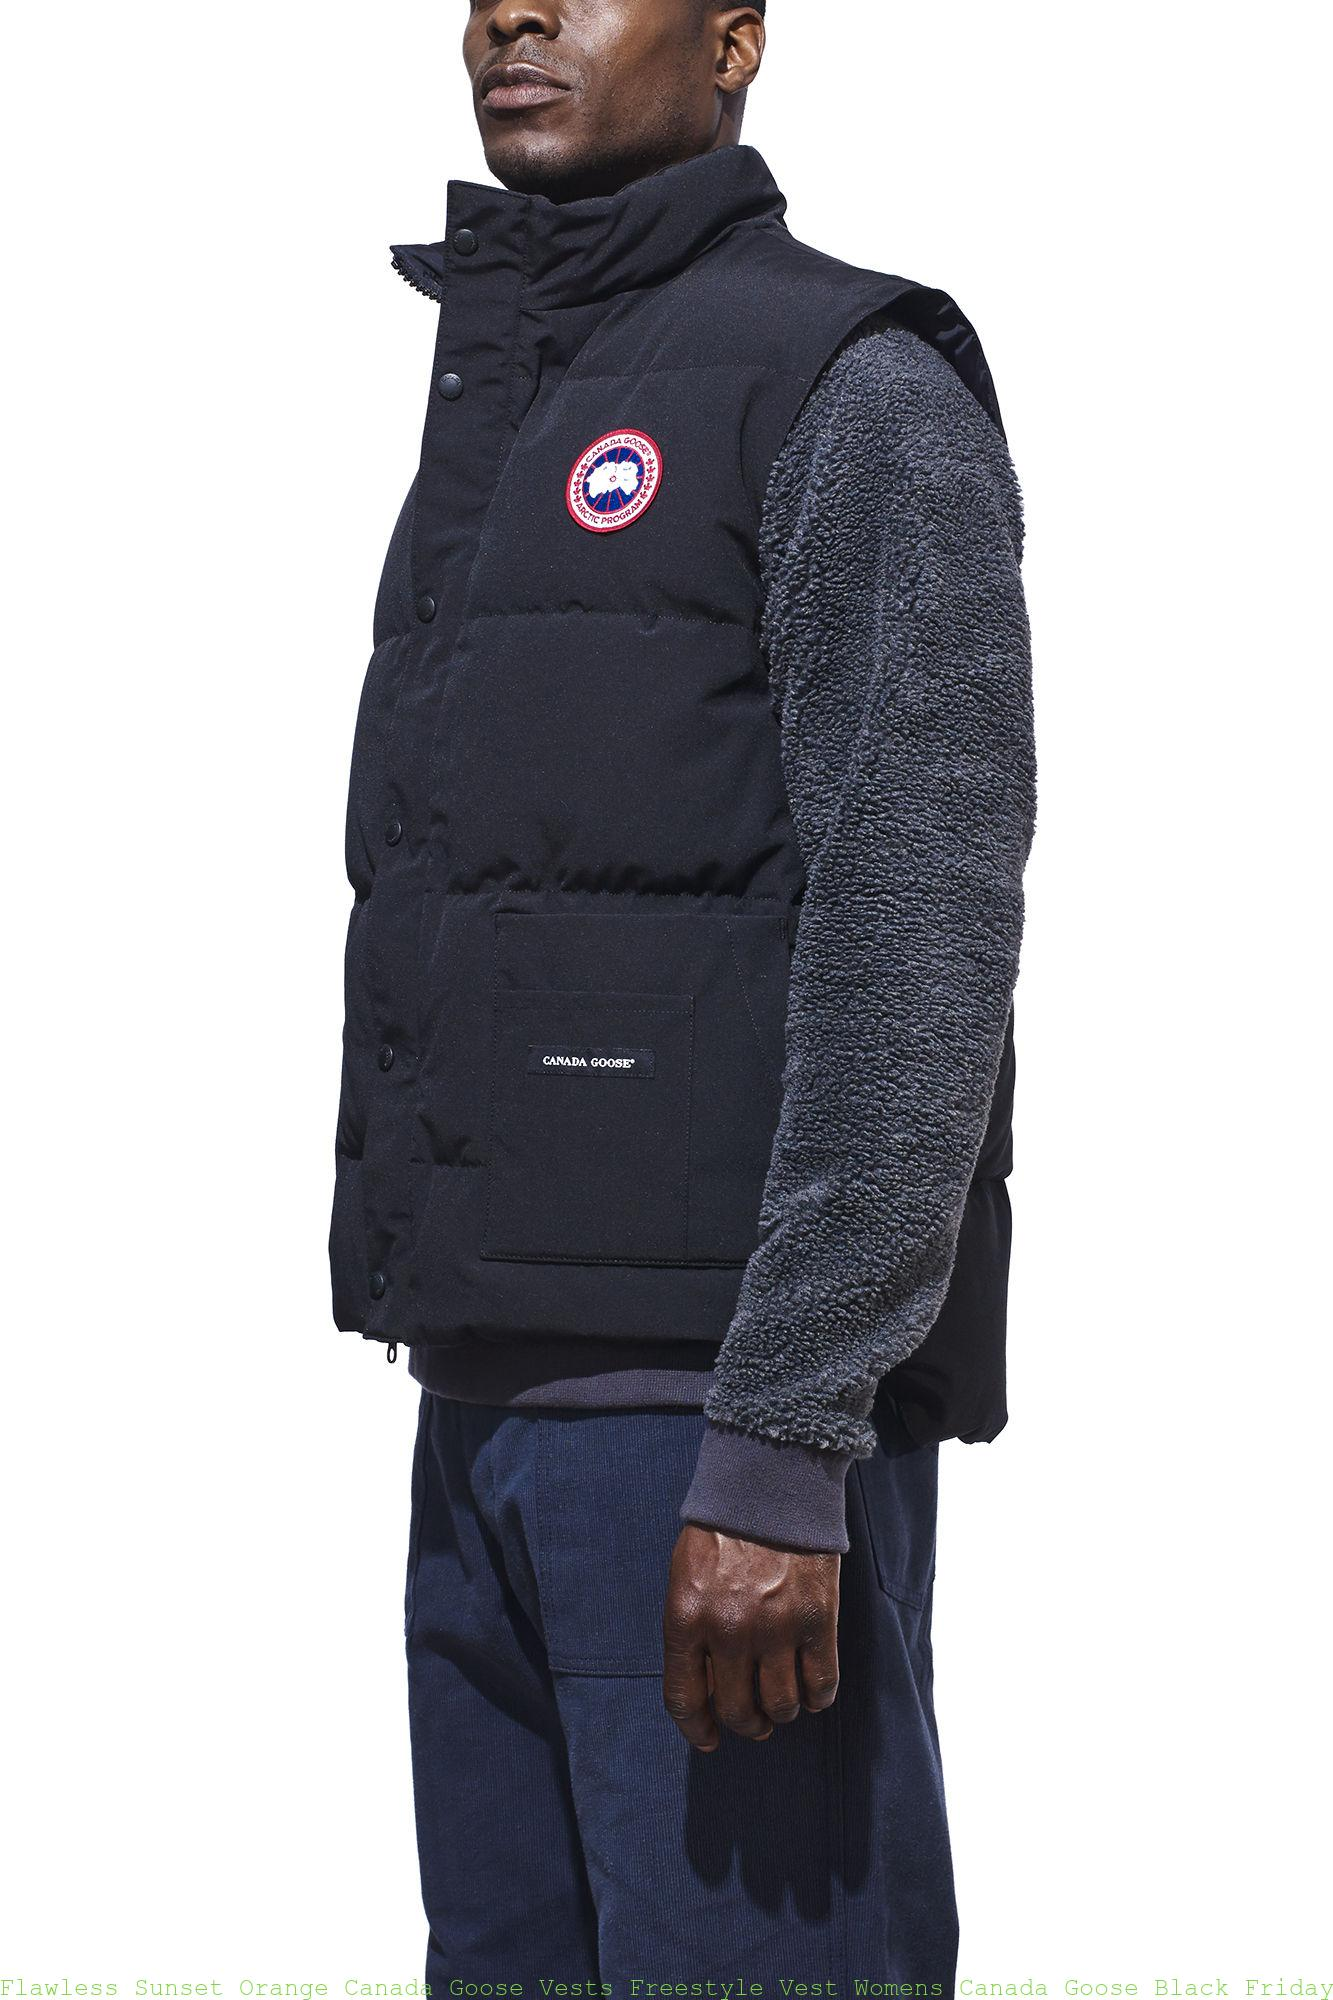 Flawless Sunset Orange Canada Goose Vests Freestyle Vest Womens Canada Goose Black Friday 4150m Cheap Canada Goose Outlet Jackets Online Sale Store